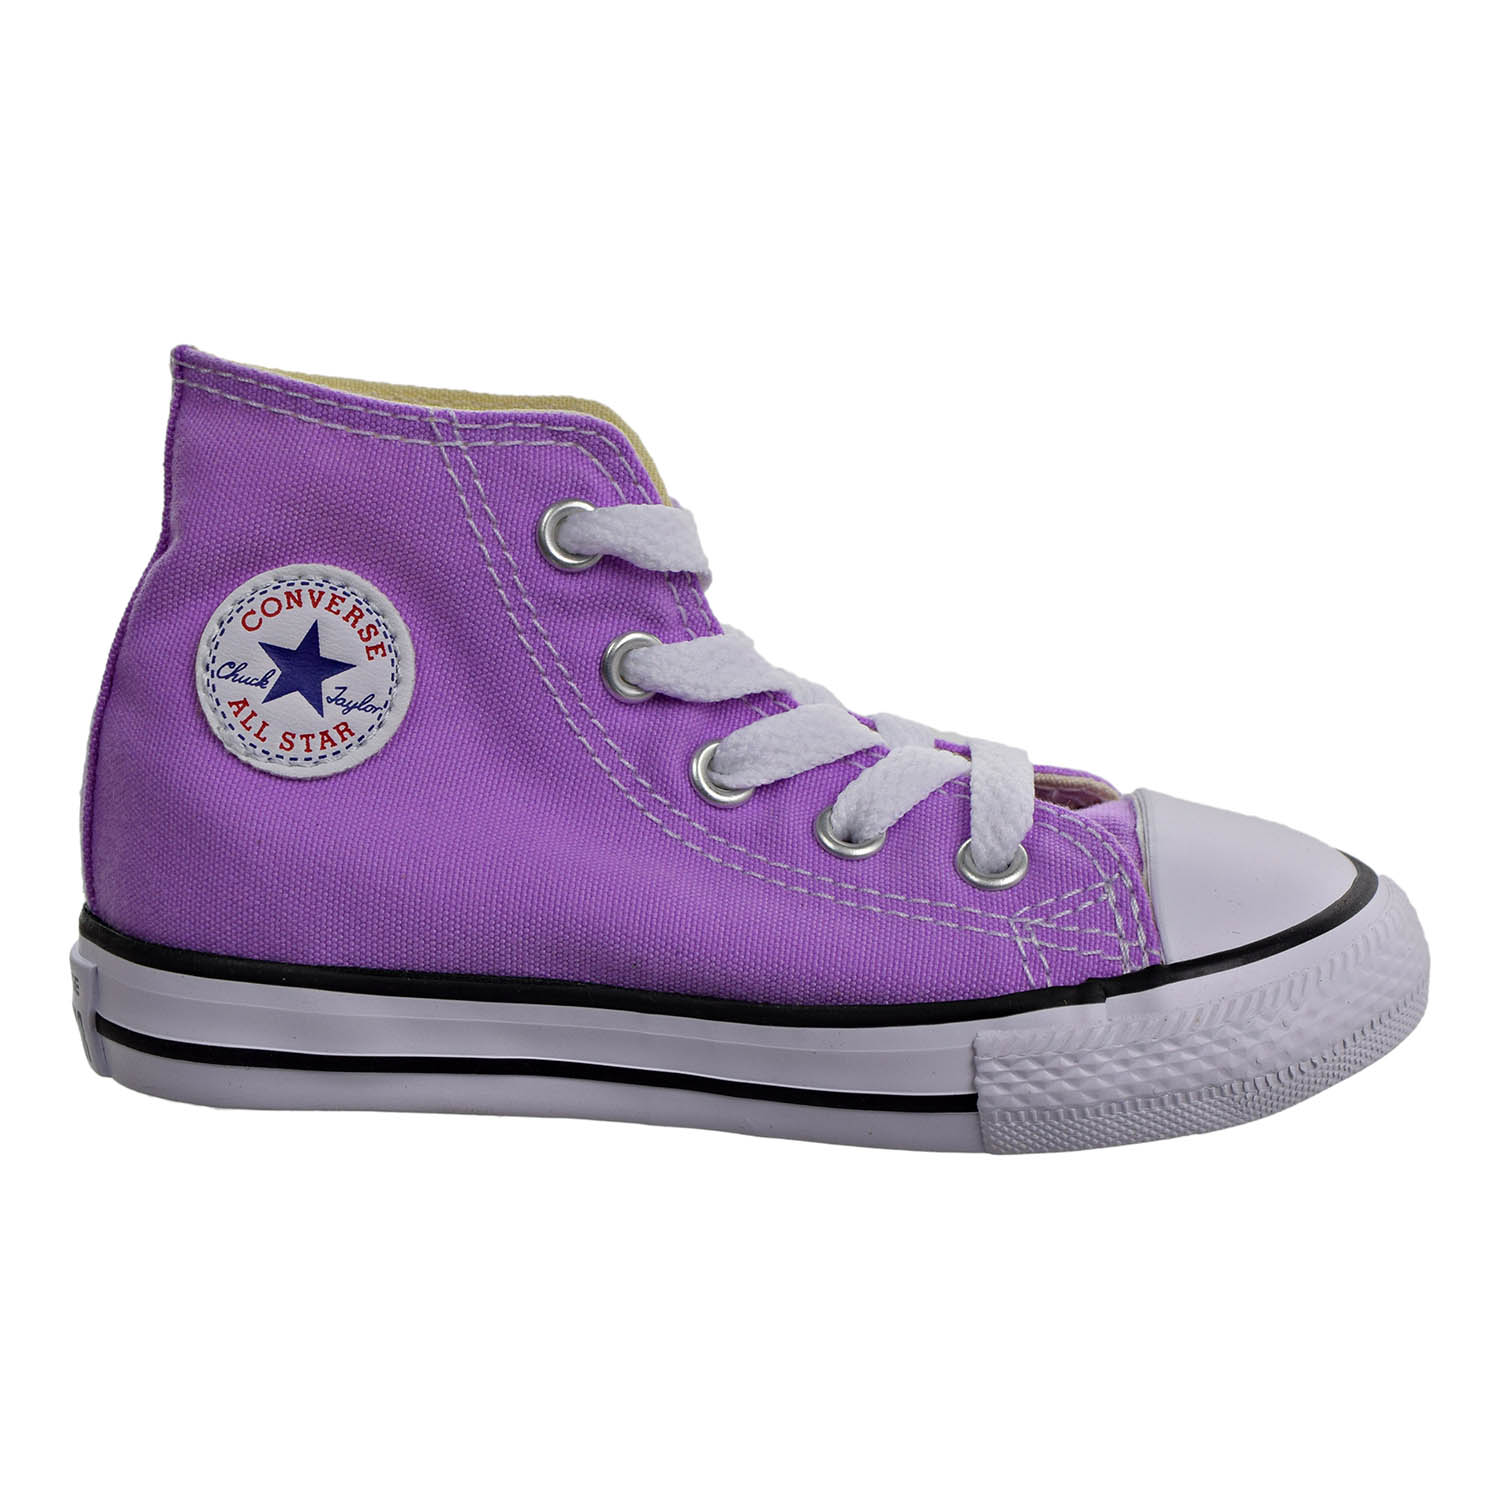 945bab6e08980b Details about Converse Chuck Taylor All Star Hi Top Infant Toddler Shoes  Fuchsia Glow 755570f